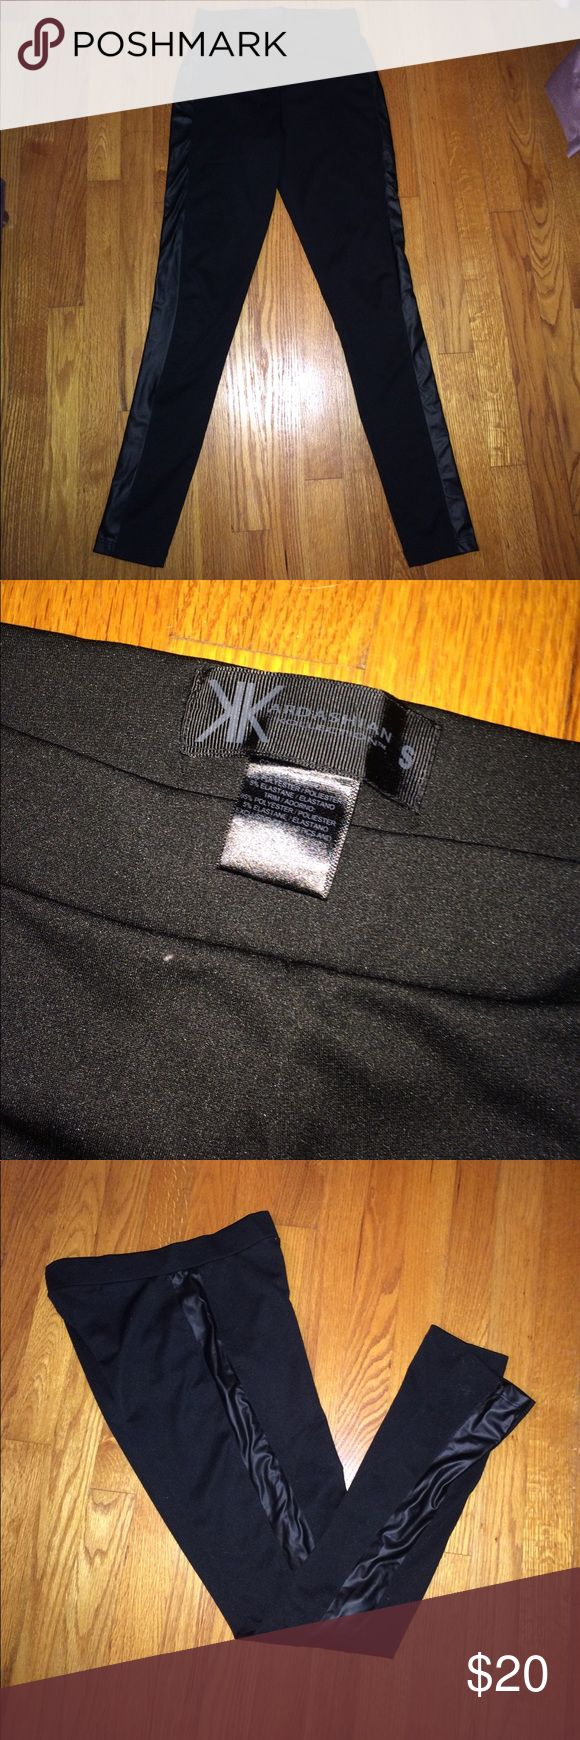 Kardashian Kollection Leggings These black Kardashian Kollection leggings have a faux leather strip down the side of each leg for a fierce look. They are super stretchy and look great! Kardashian Kollection Pants Leggings